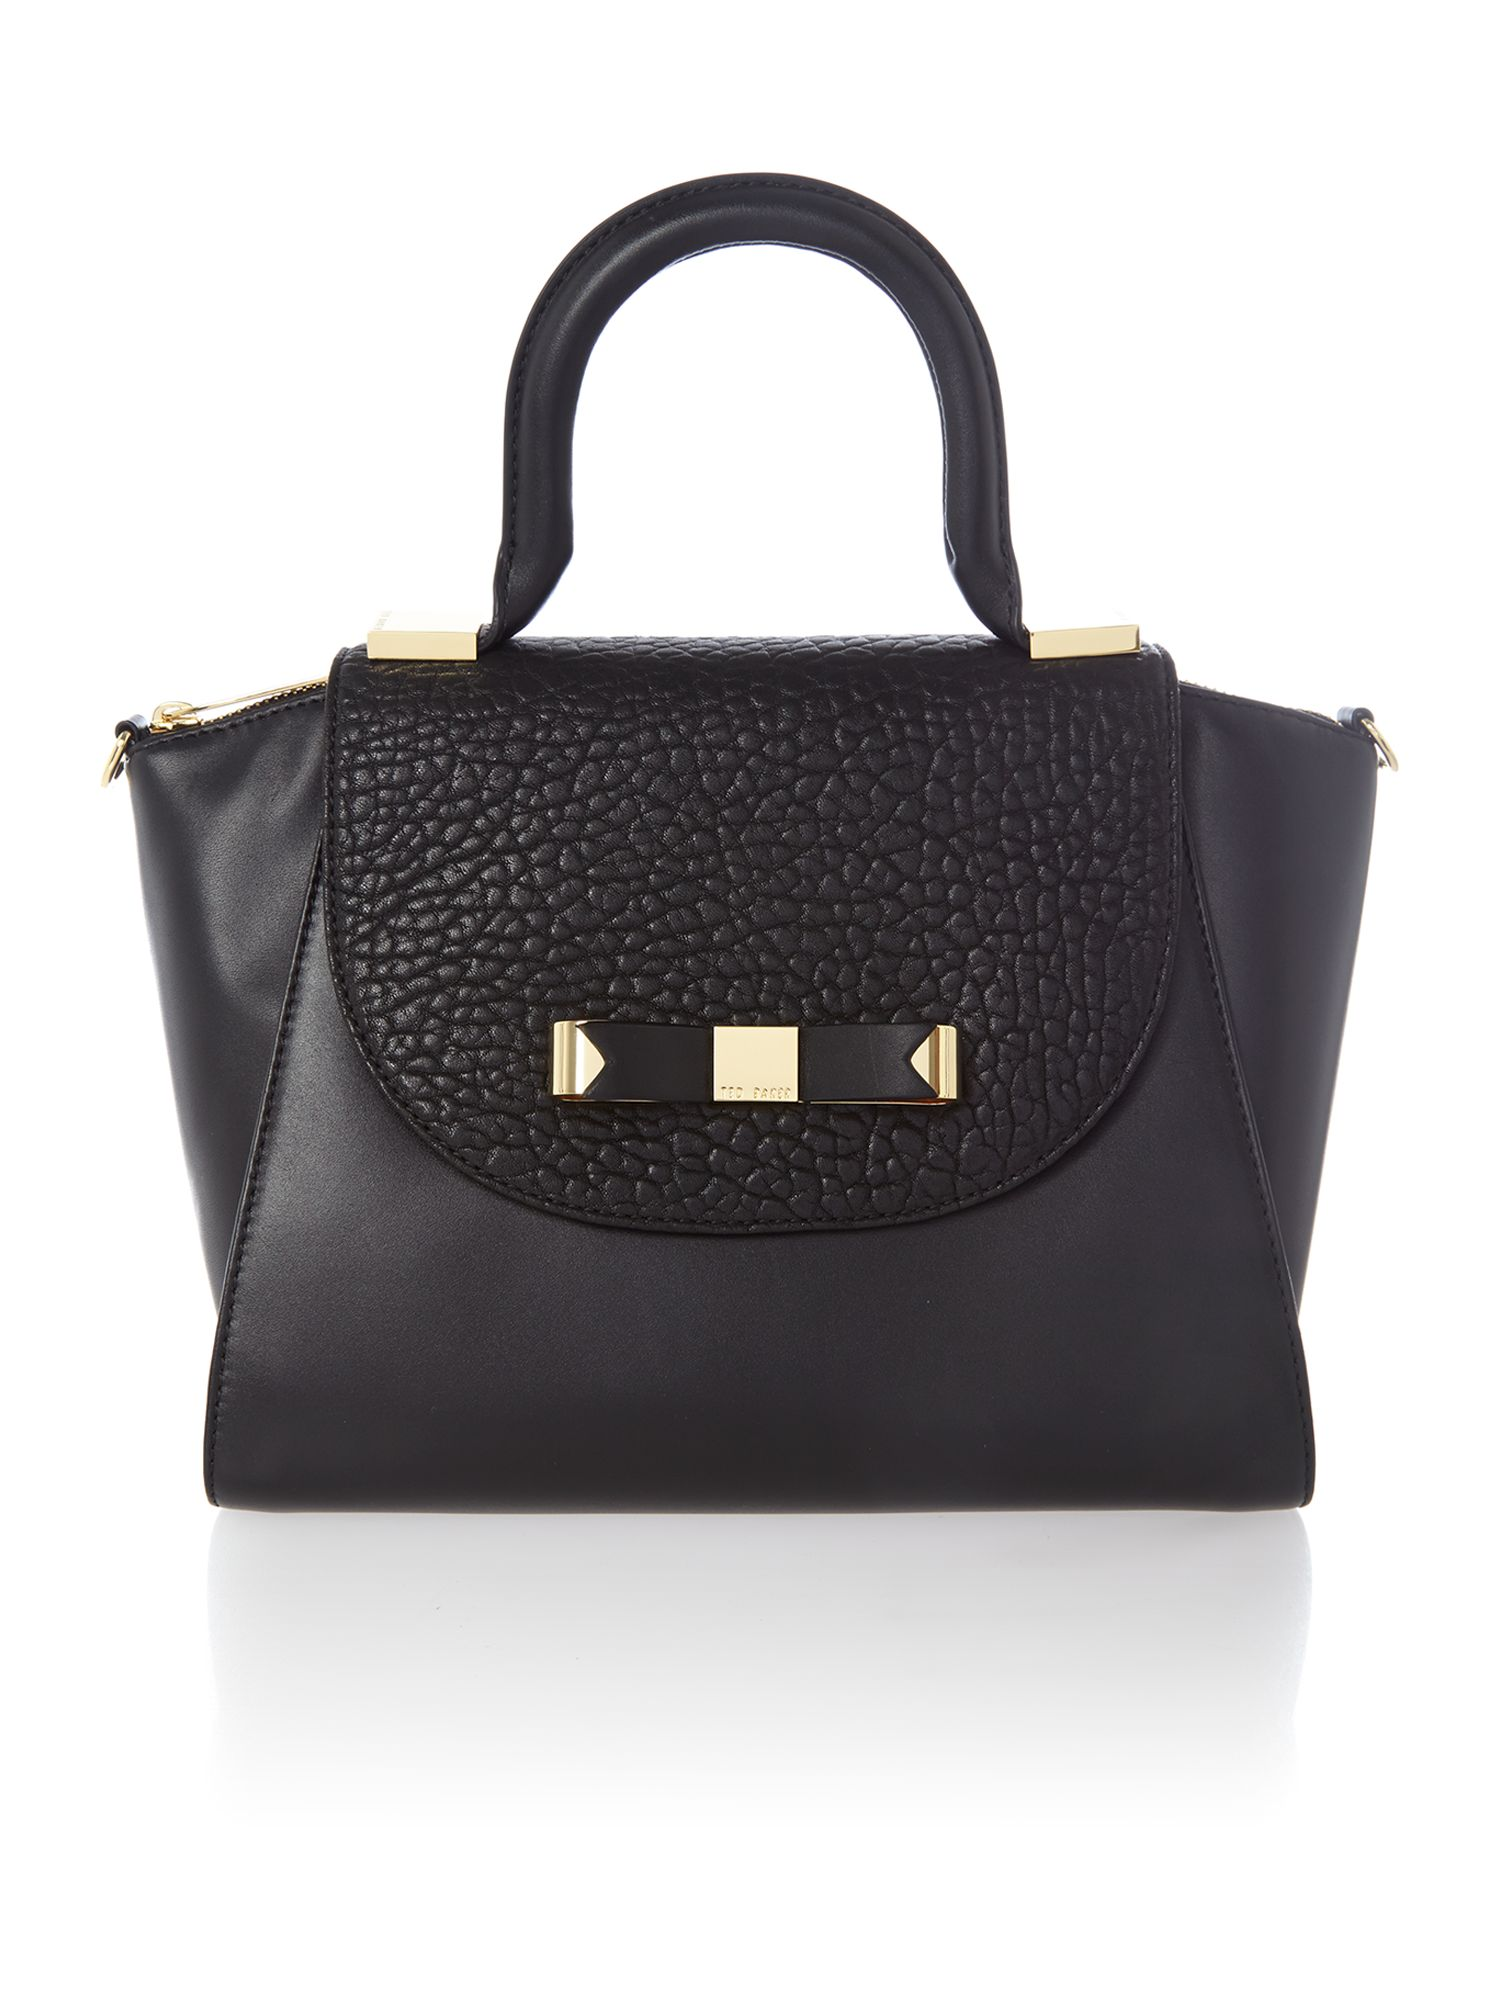 Black bow leather mini tote bag